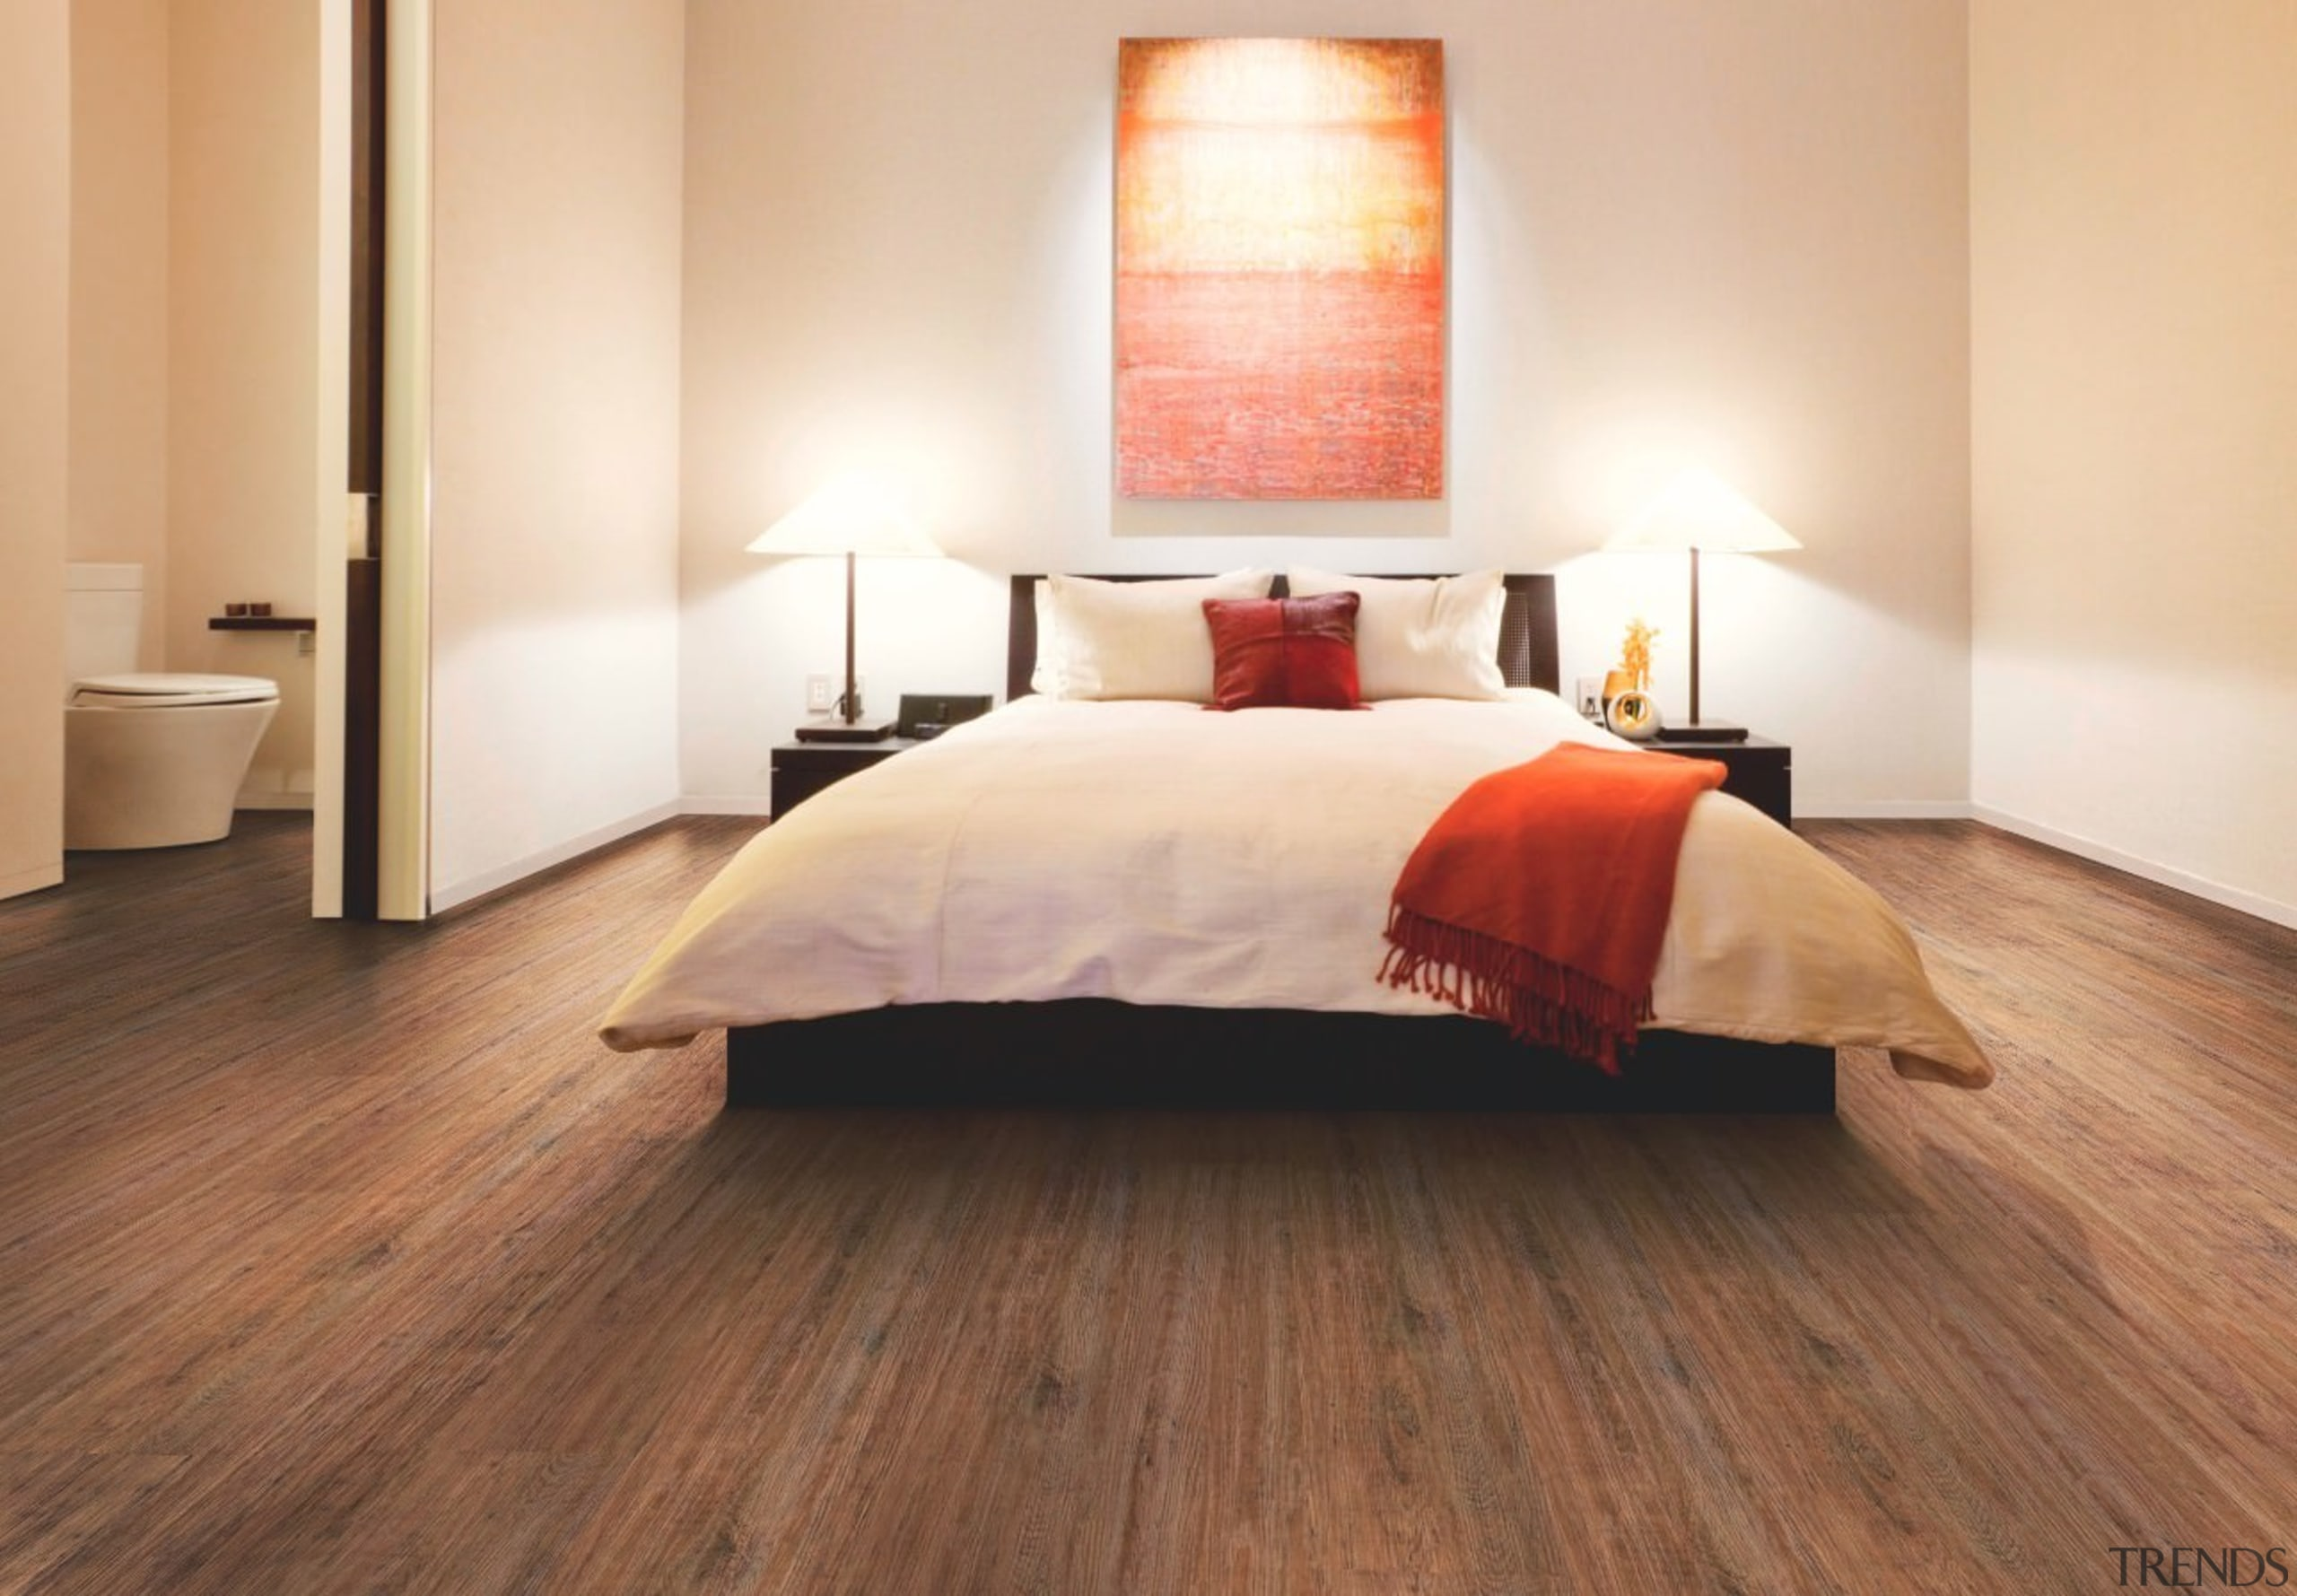 The Expona Commercial Wood collection features an extensive bed, bed frame, bedroom, ceiling, floor, flooring, hardwood, interior design, laminate flooring, property, room, suite, wood, wood flooring, brown, orange, white